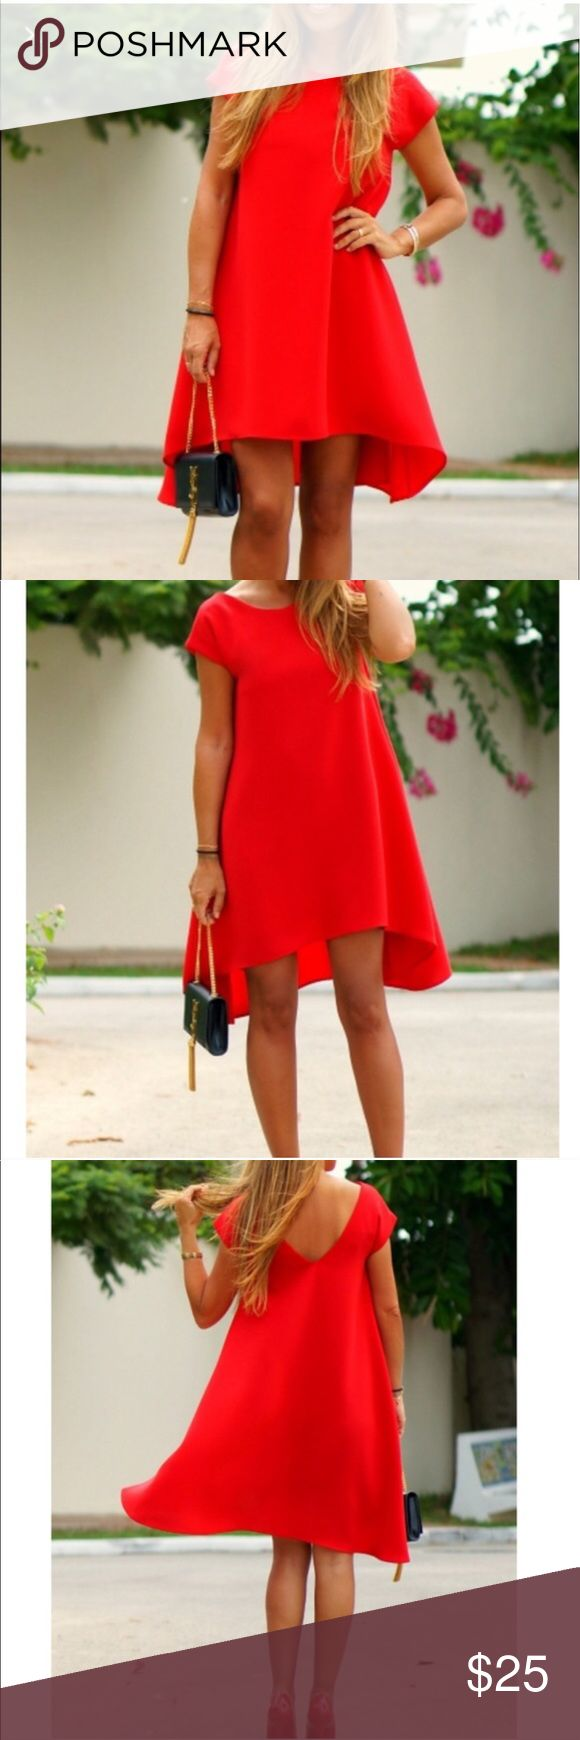 Red Dress Beautiful red dress perfect for a casual night out. Never used in perfect condition 🎈 vessos Dresses High Low